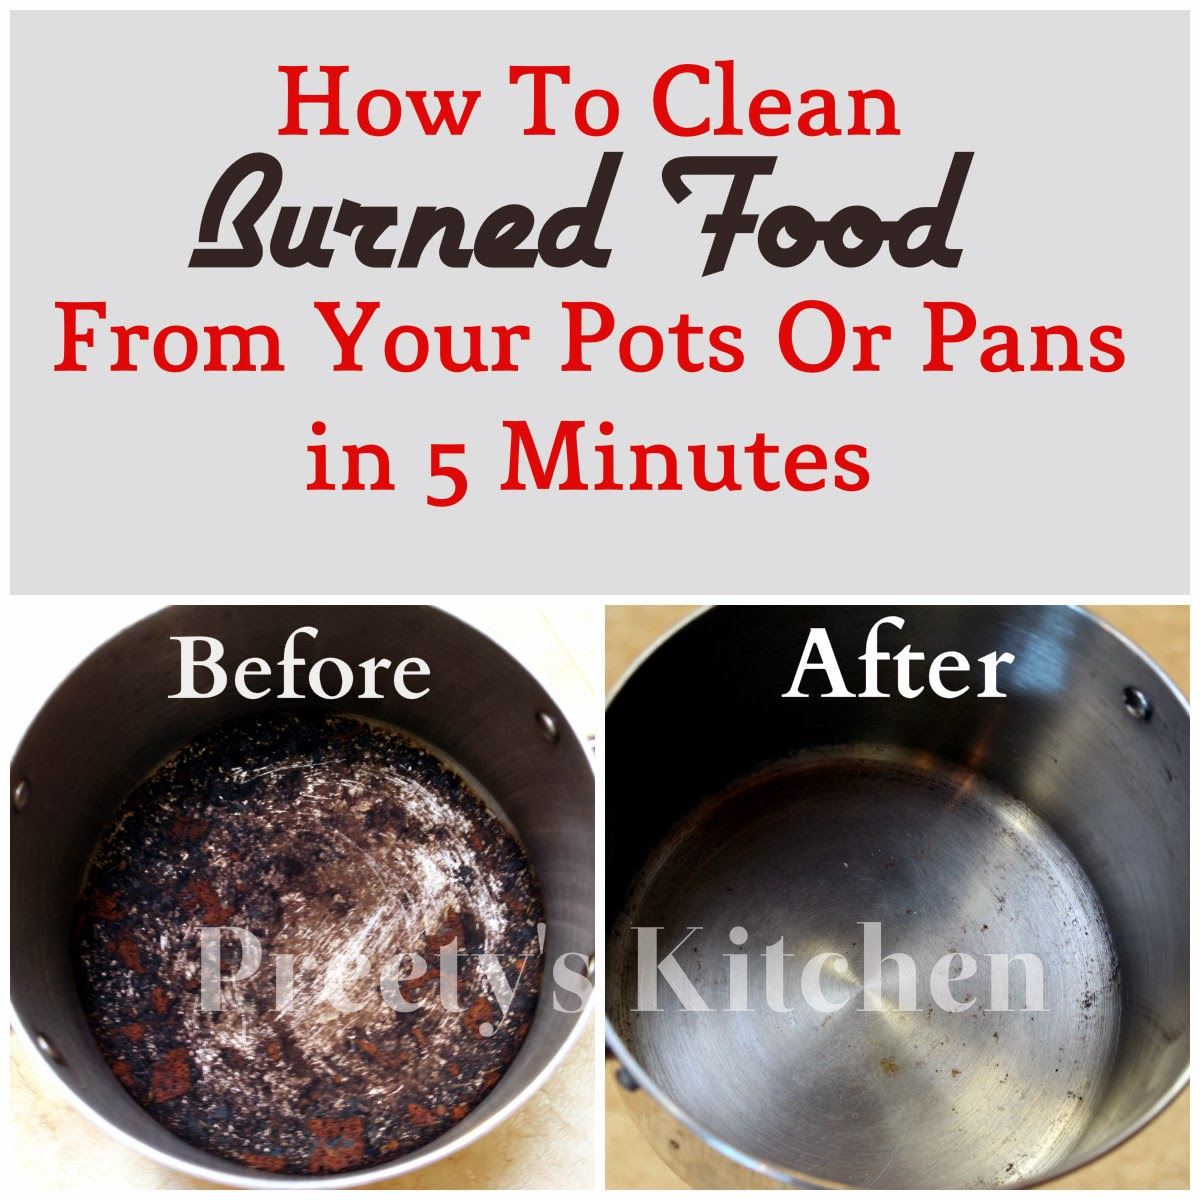 How To Clean Burned Food From Your Pots Or Pans In 5 Minutes